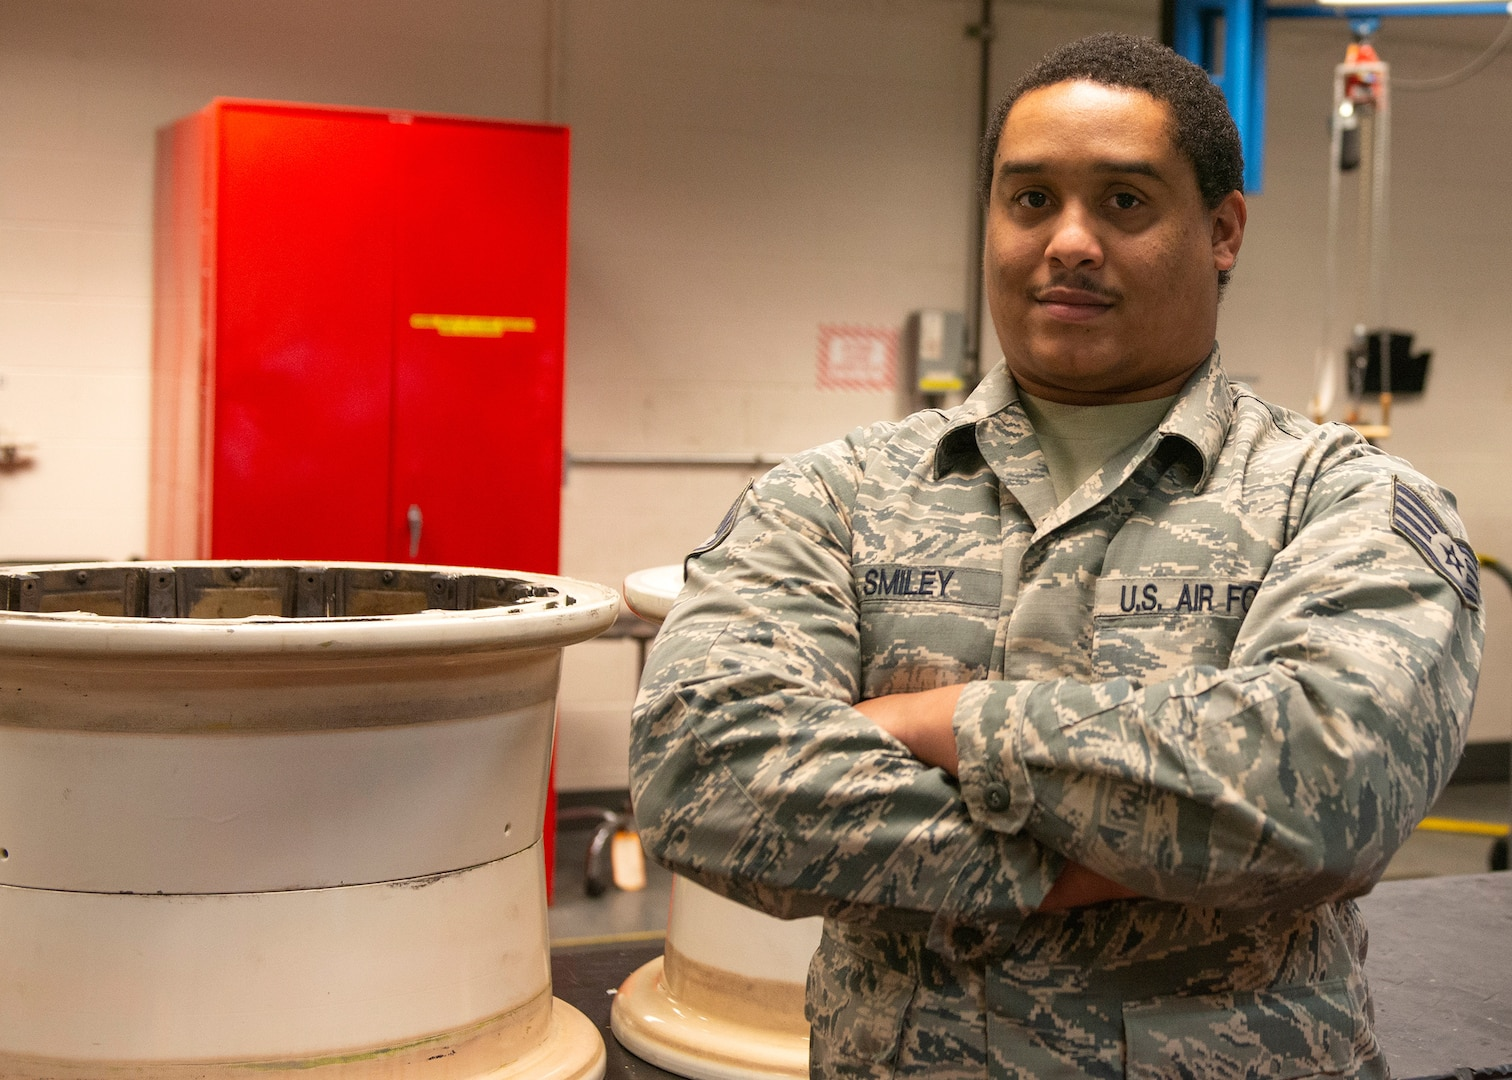 Joint Base Elmendorf-Richardson Airman Saves a Life